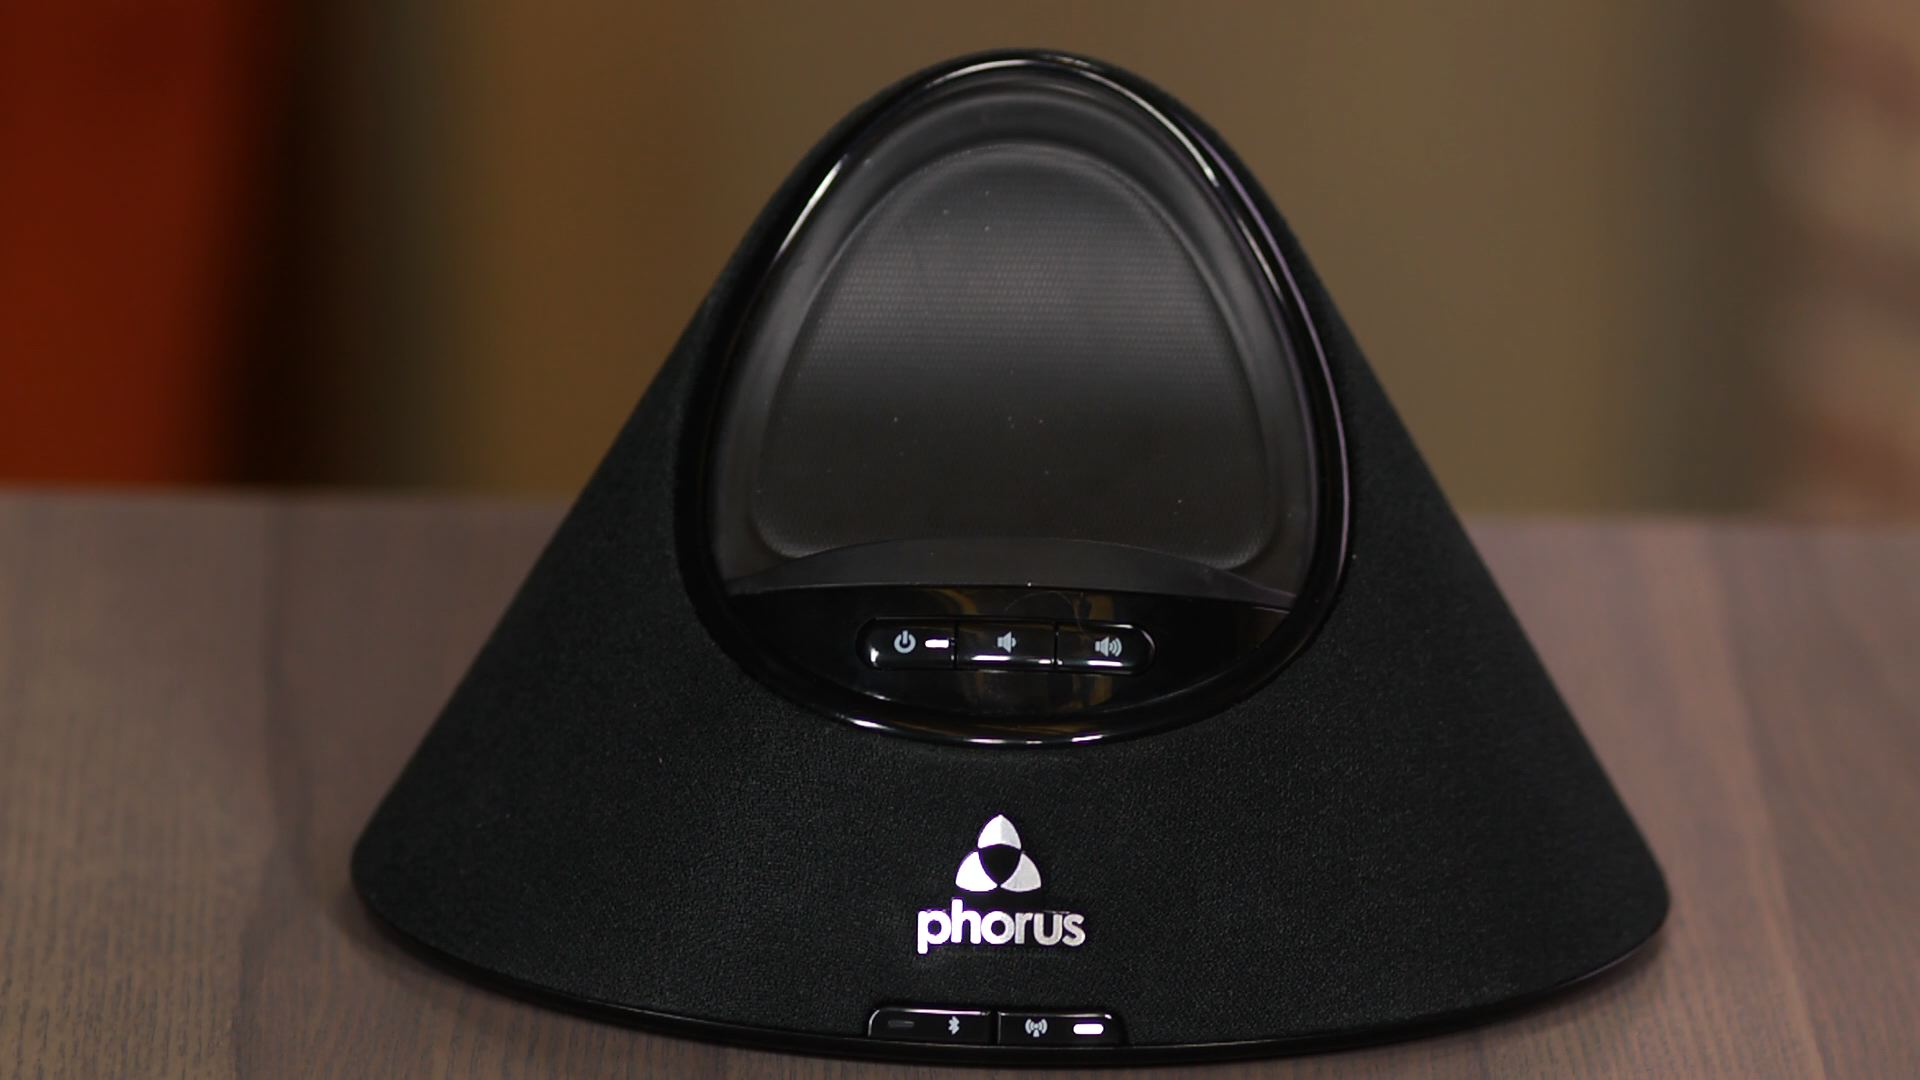 Video: Phorus wireless speaker can't match Sonos